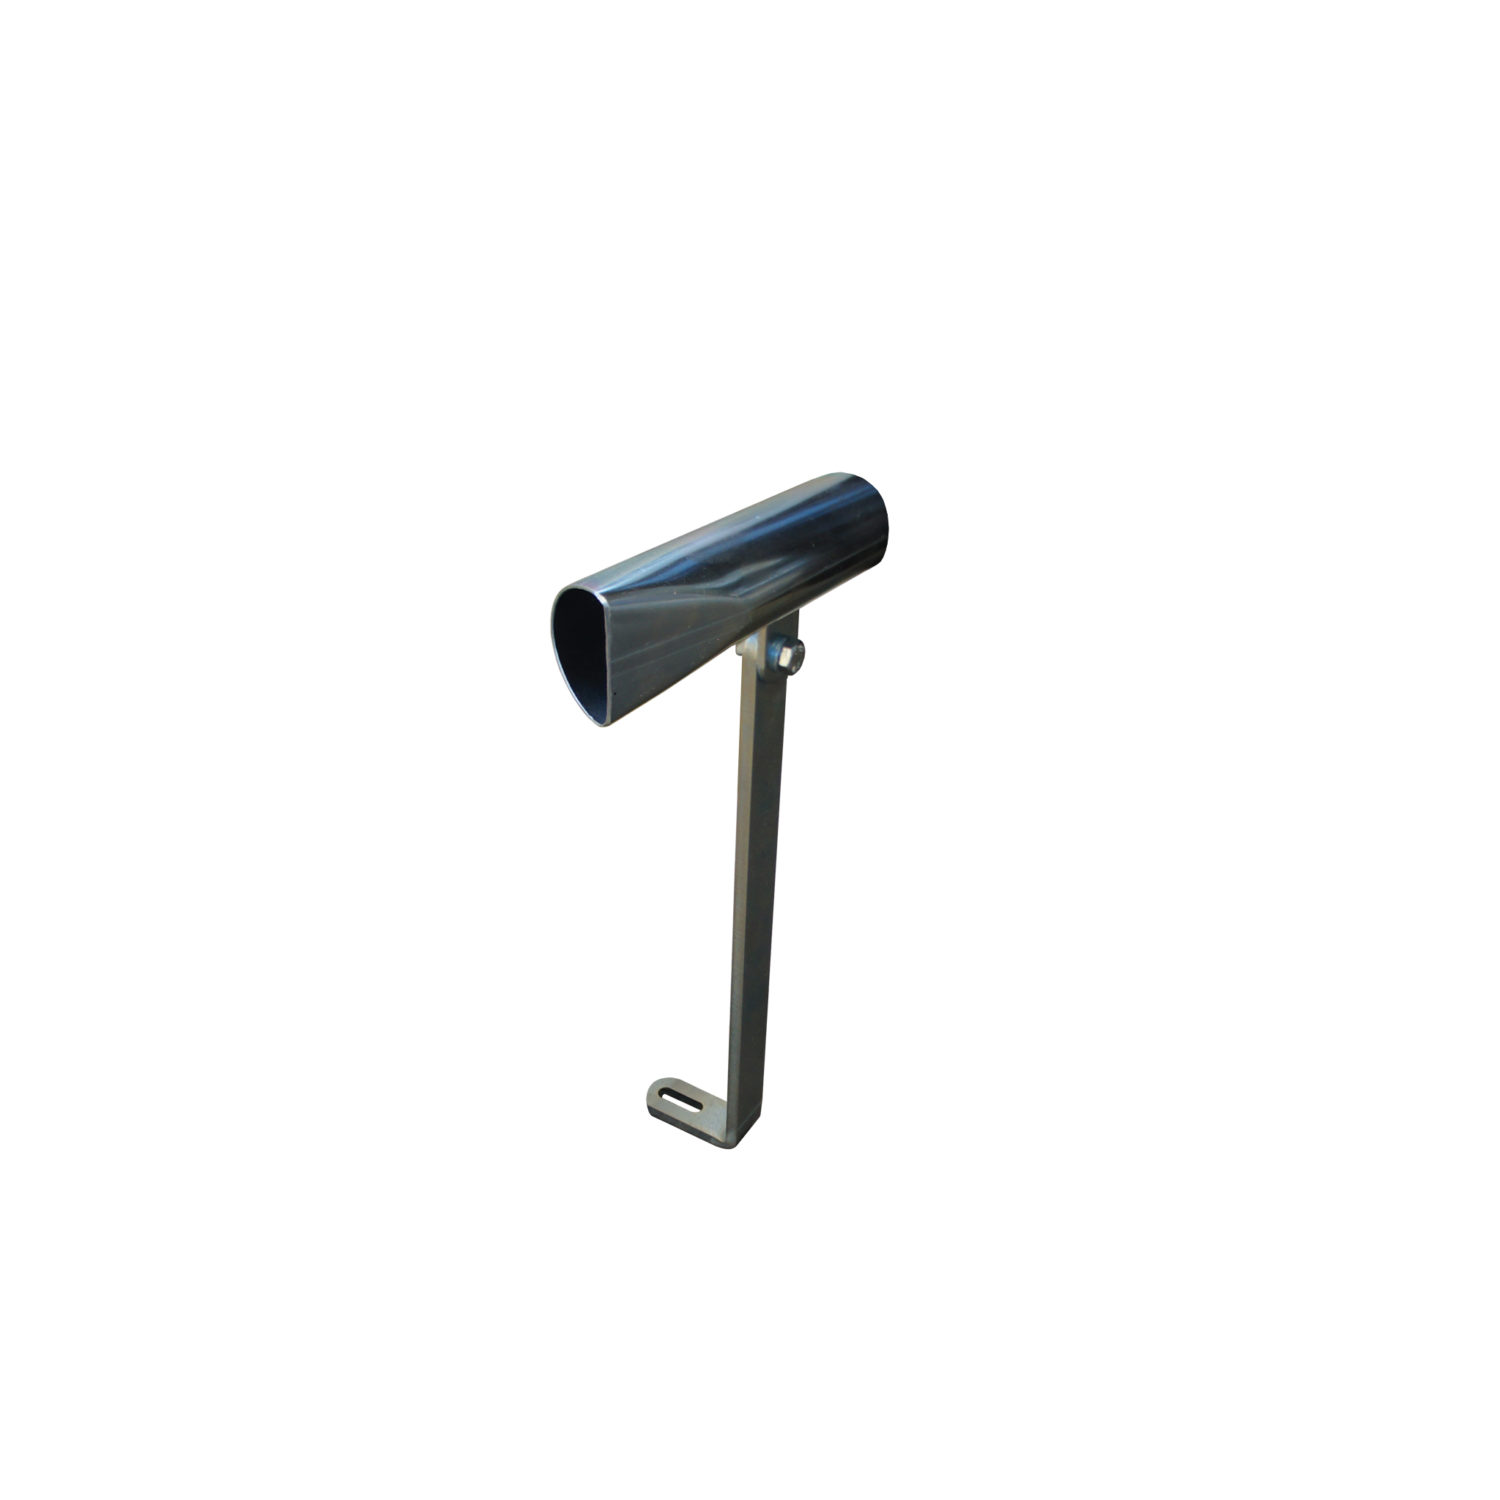 Extractor tube for NQS500